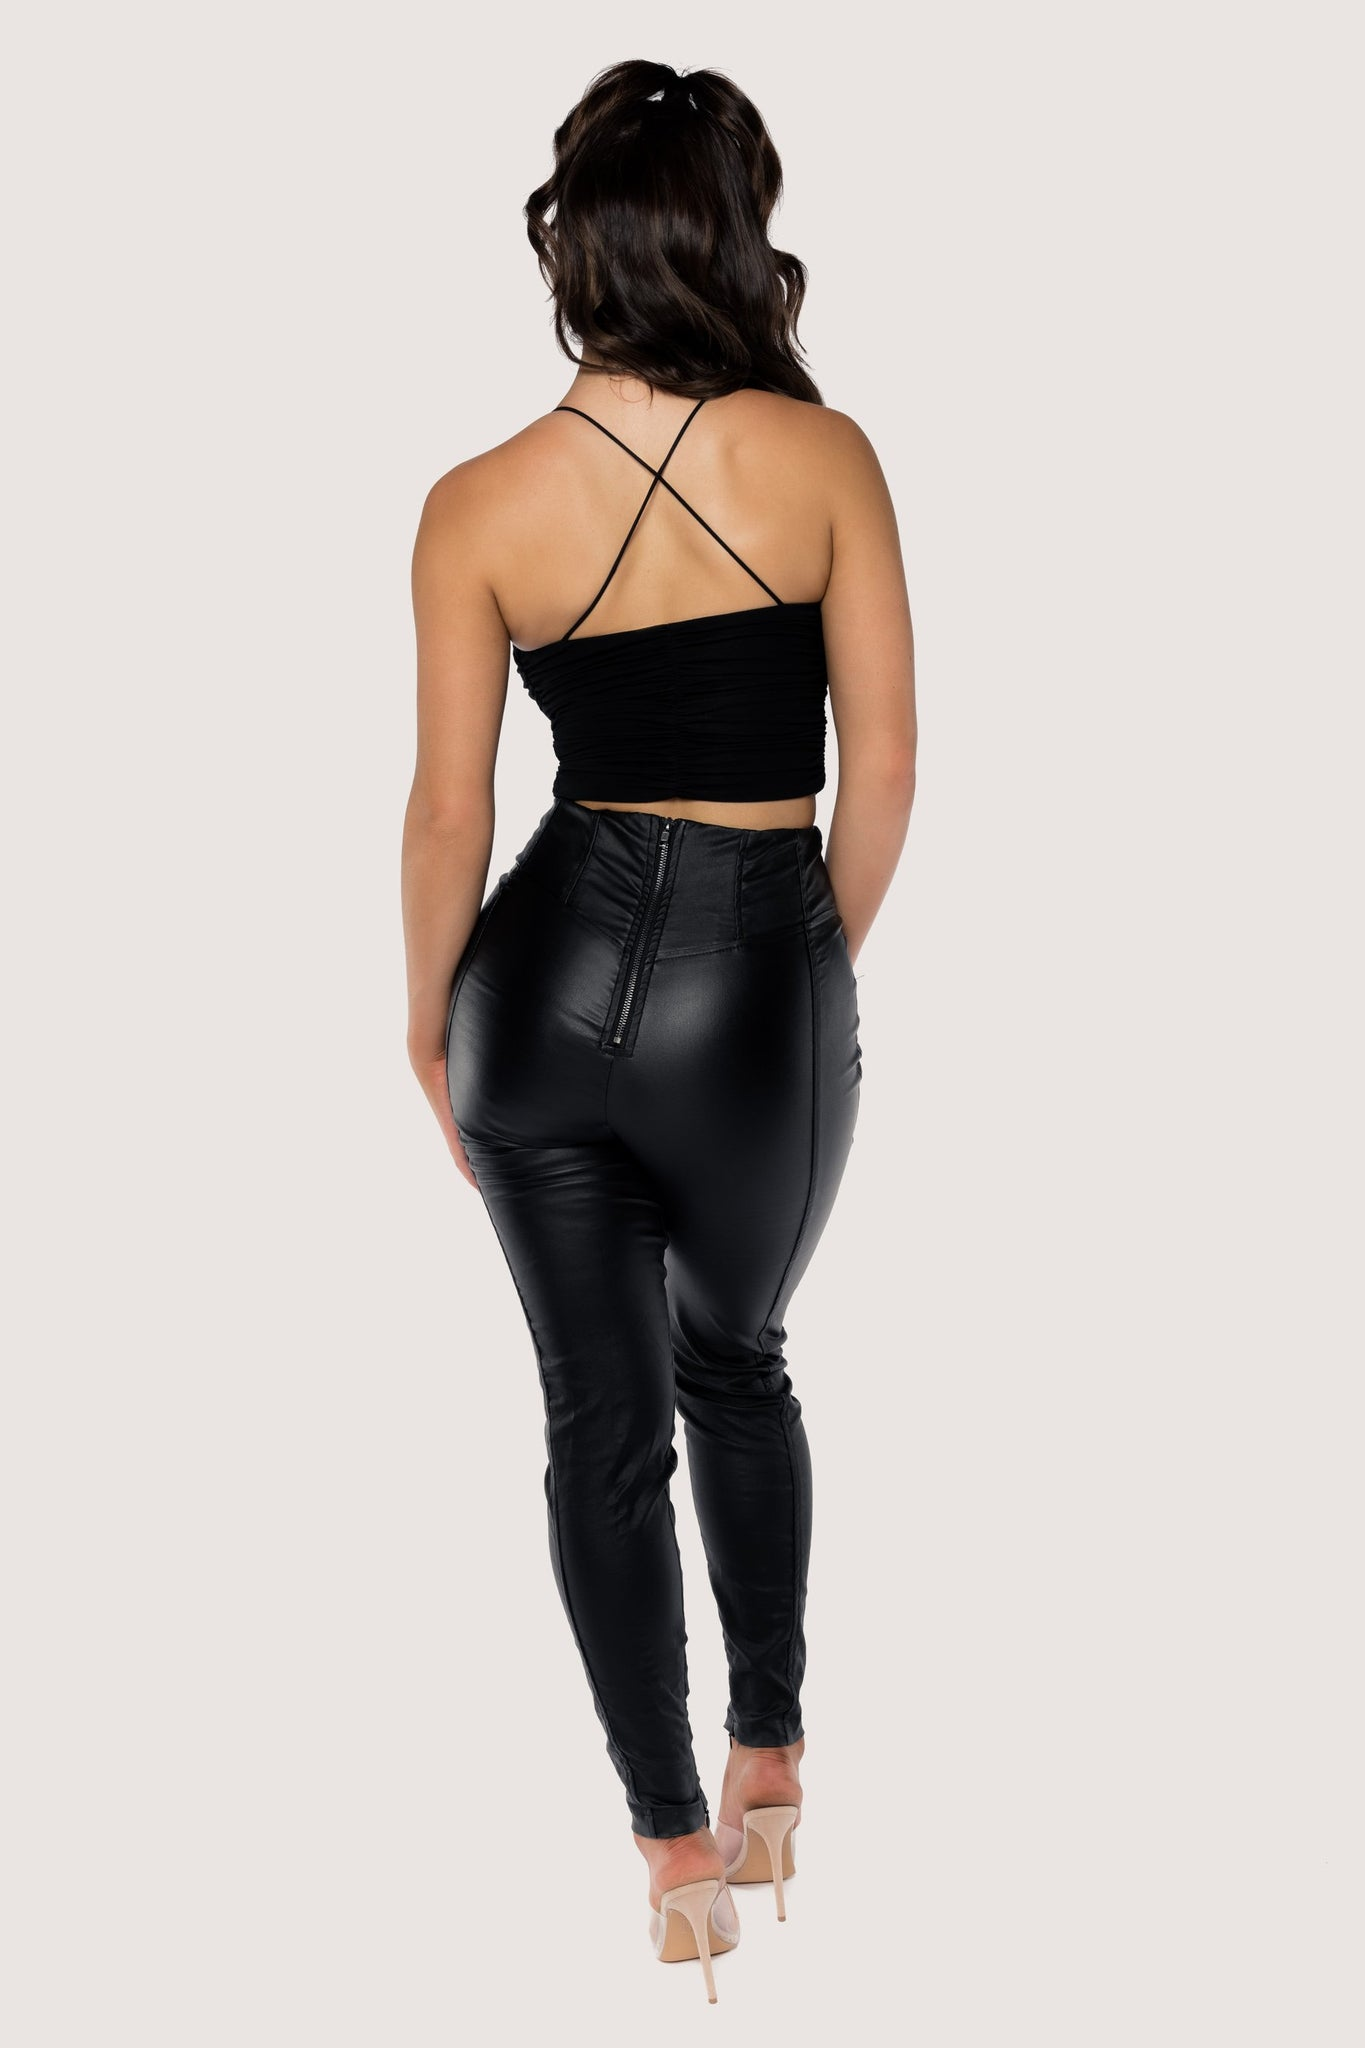 Kaela Ruched Front Tie Up Crop Top - Black - MESHKI